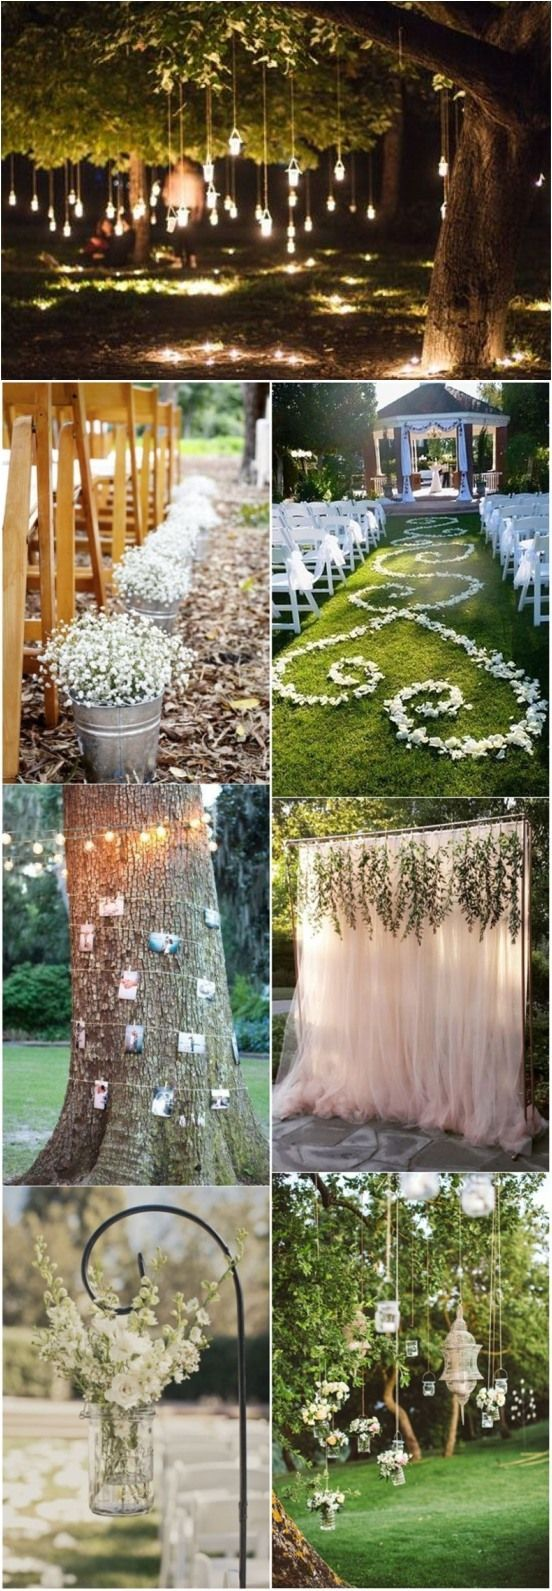 20+ Genius Outdoor Wedding Ideas | Outdoor wedding decorations ...